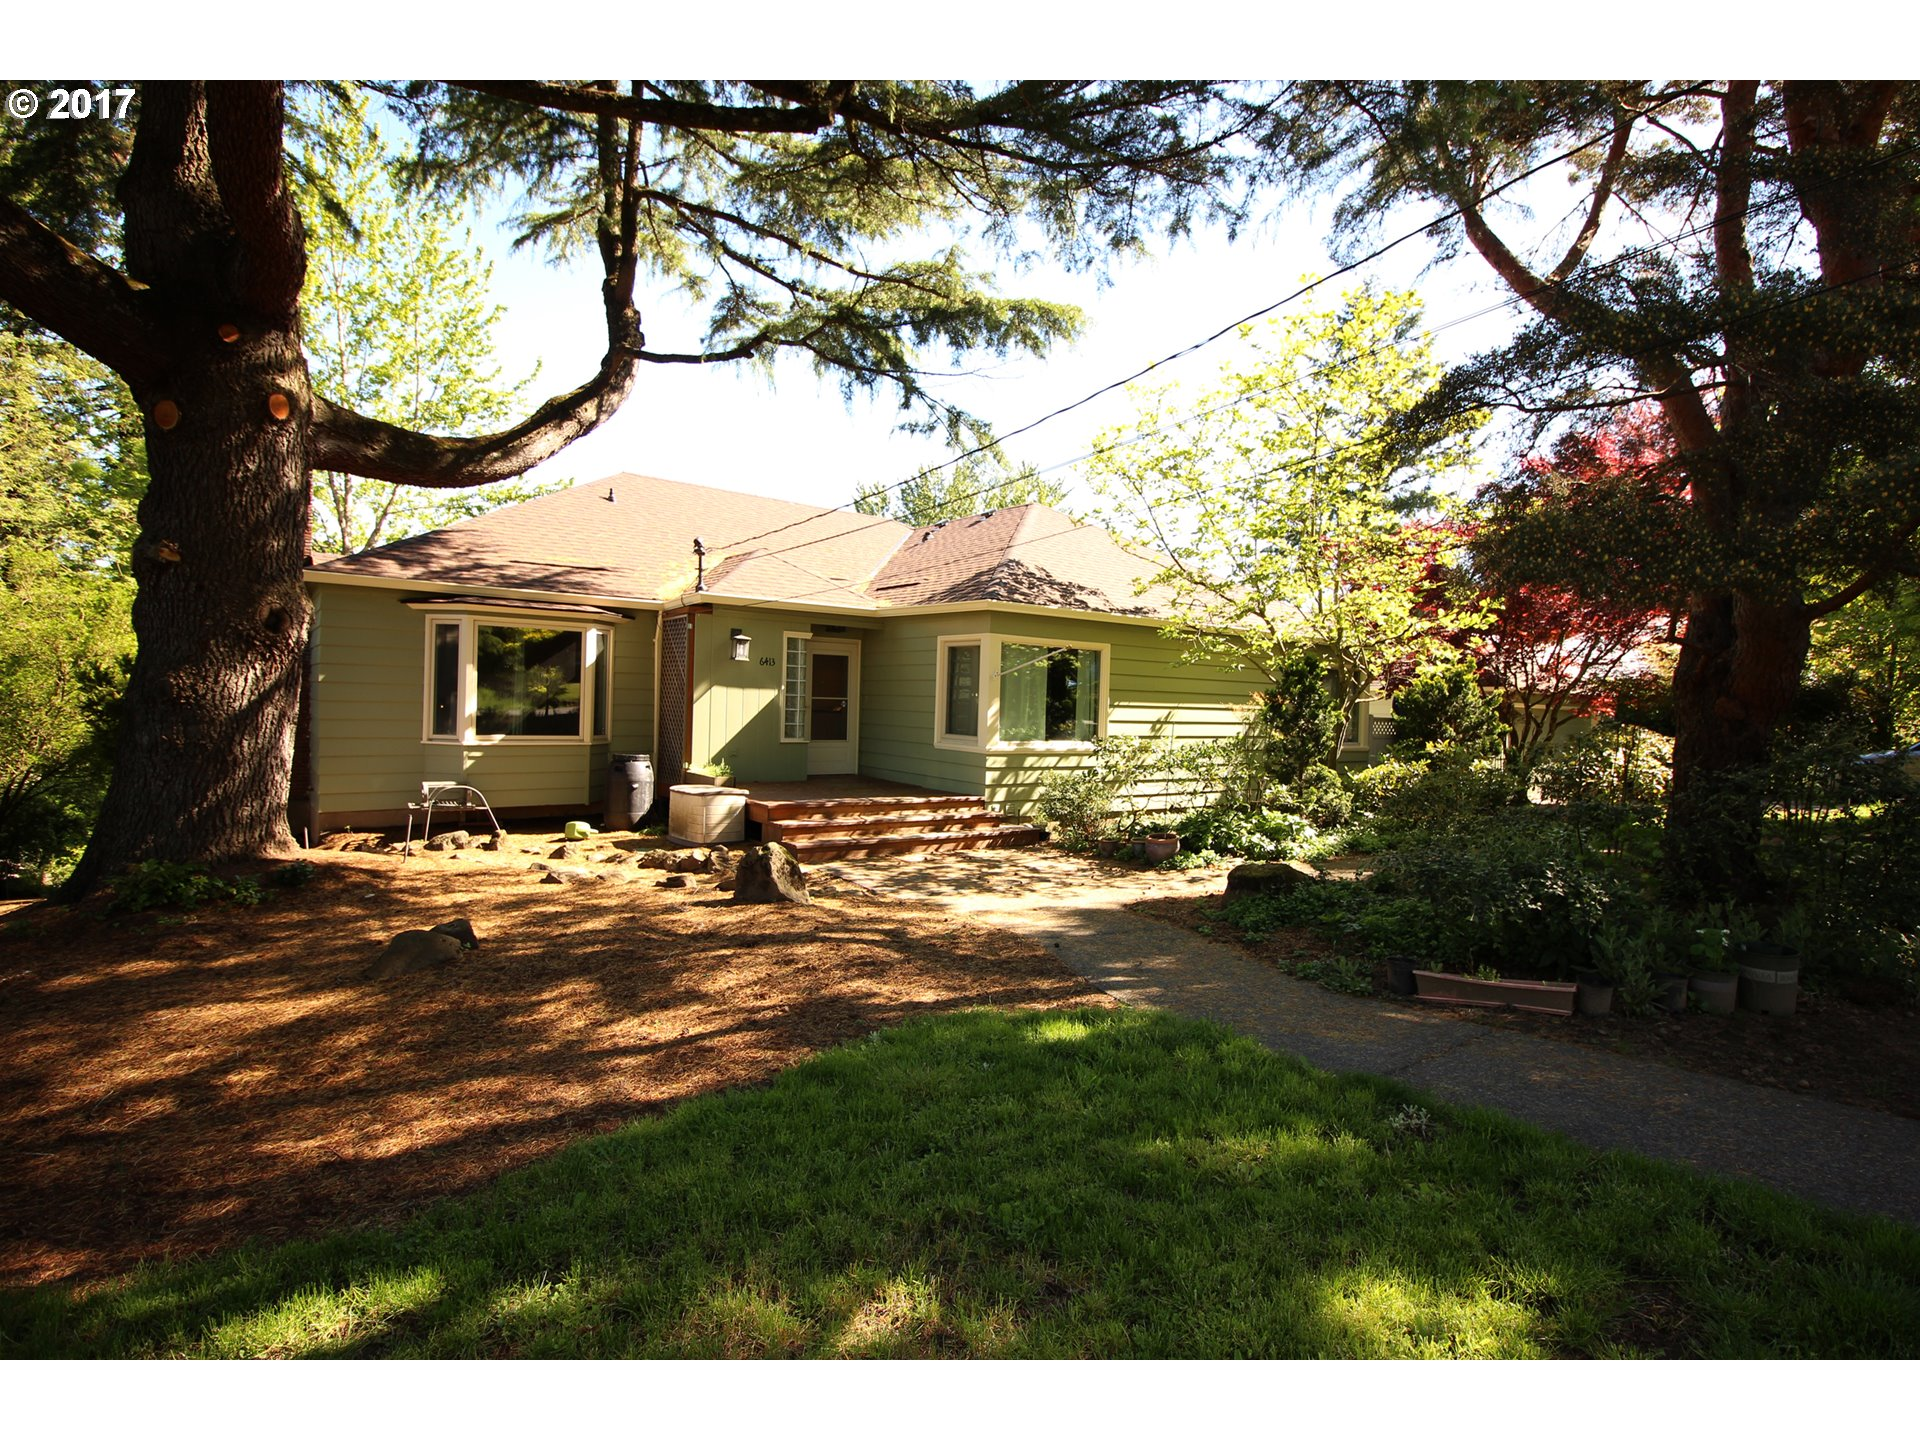 3824 sq. ft 5 bedrooms 4 bathrooms  House For Sale, Portland, OR